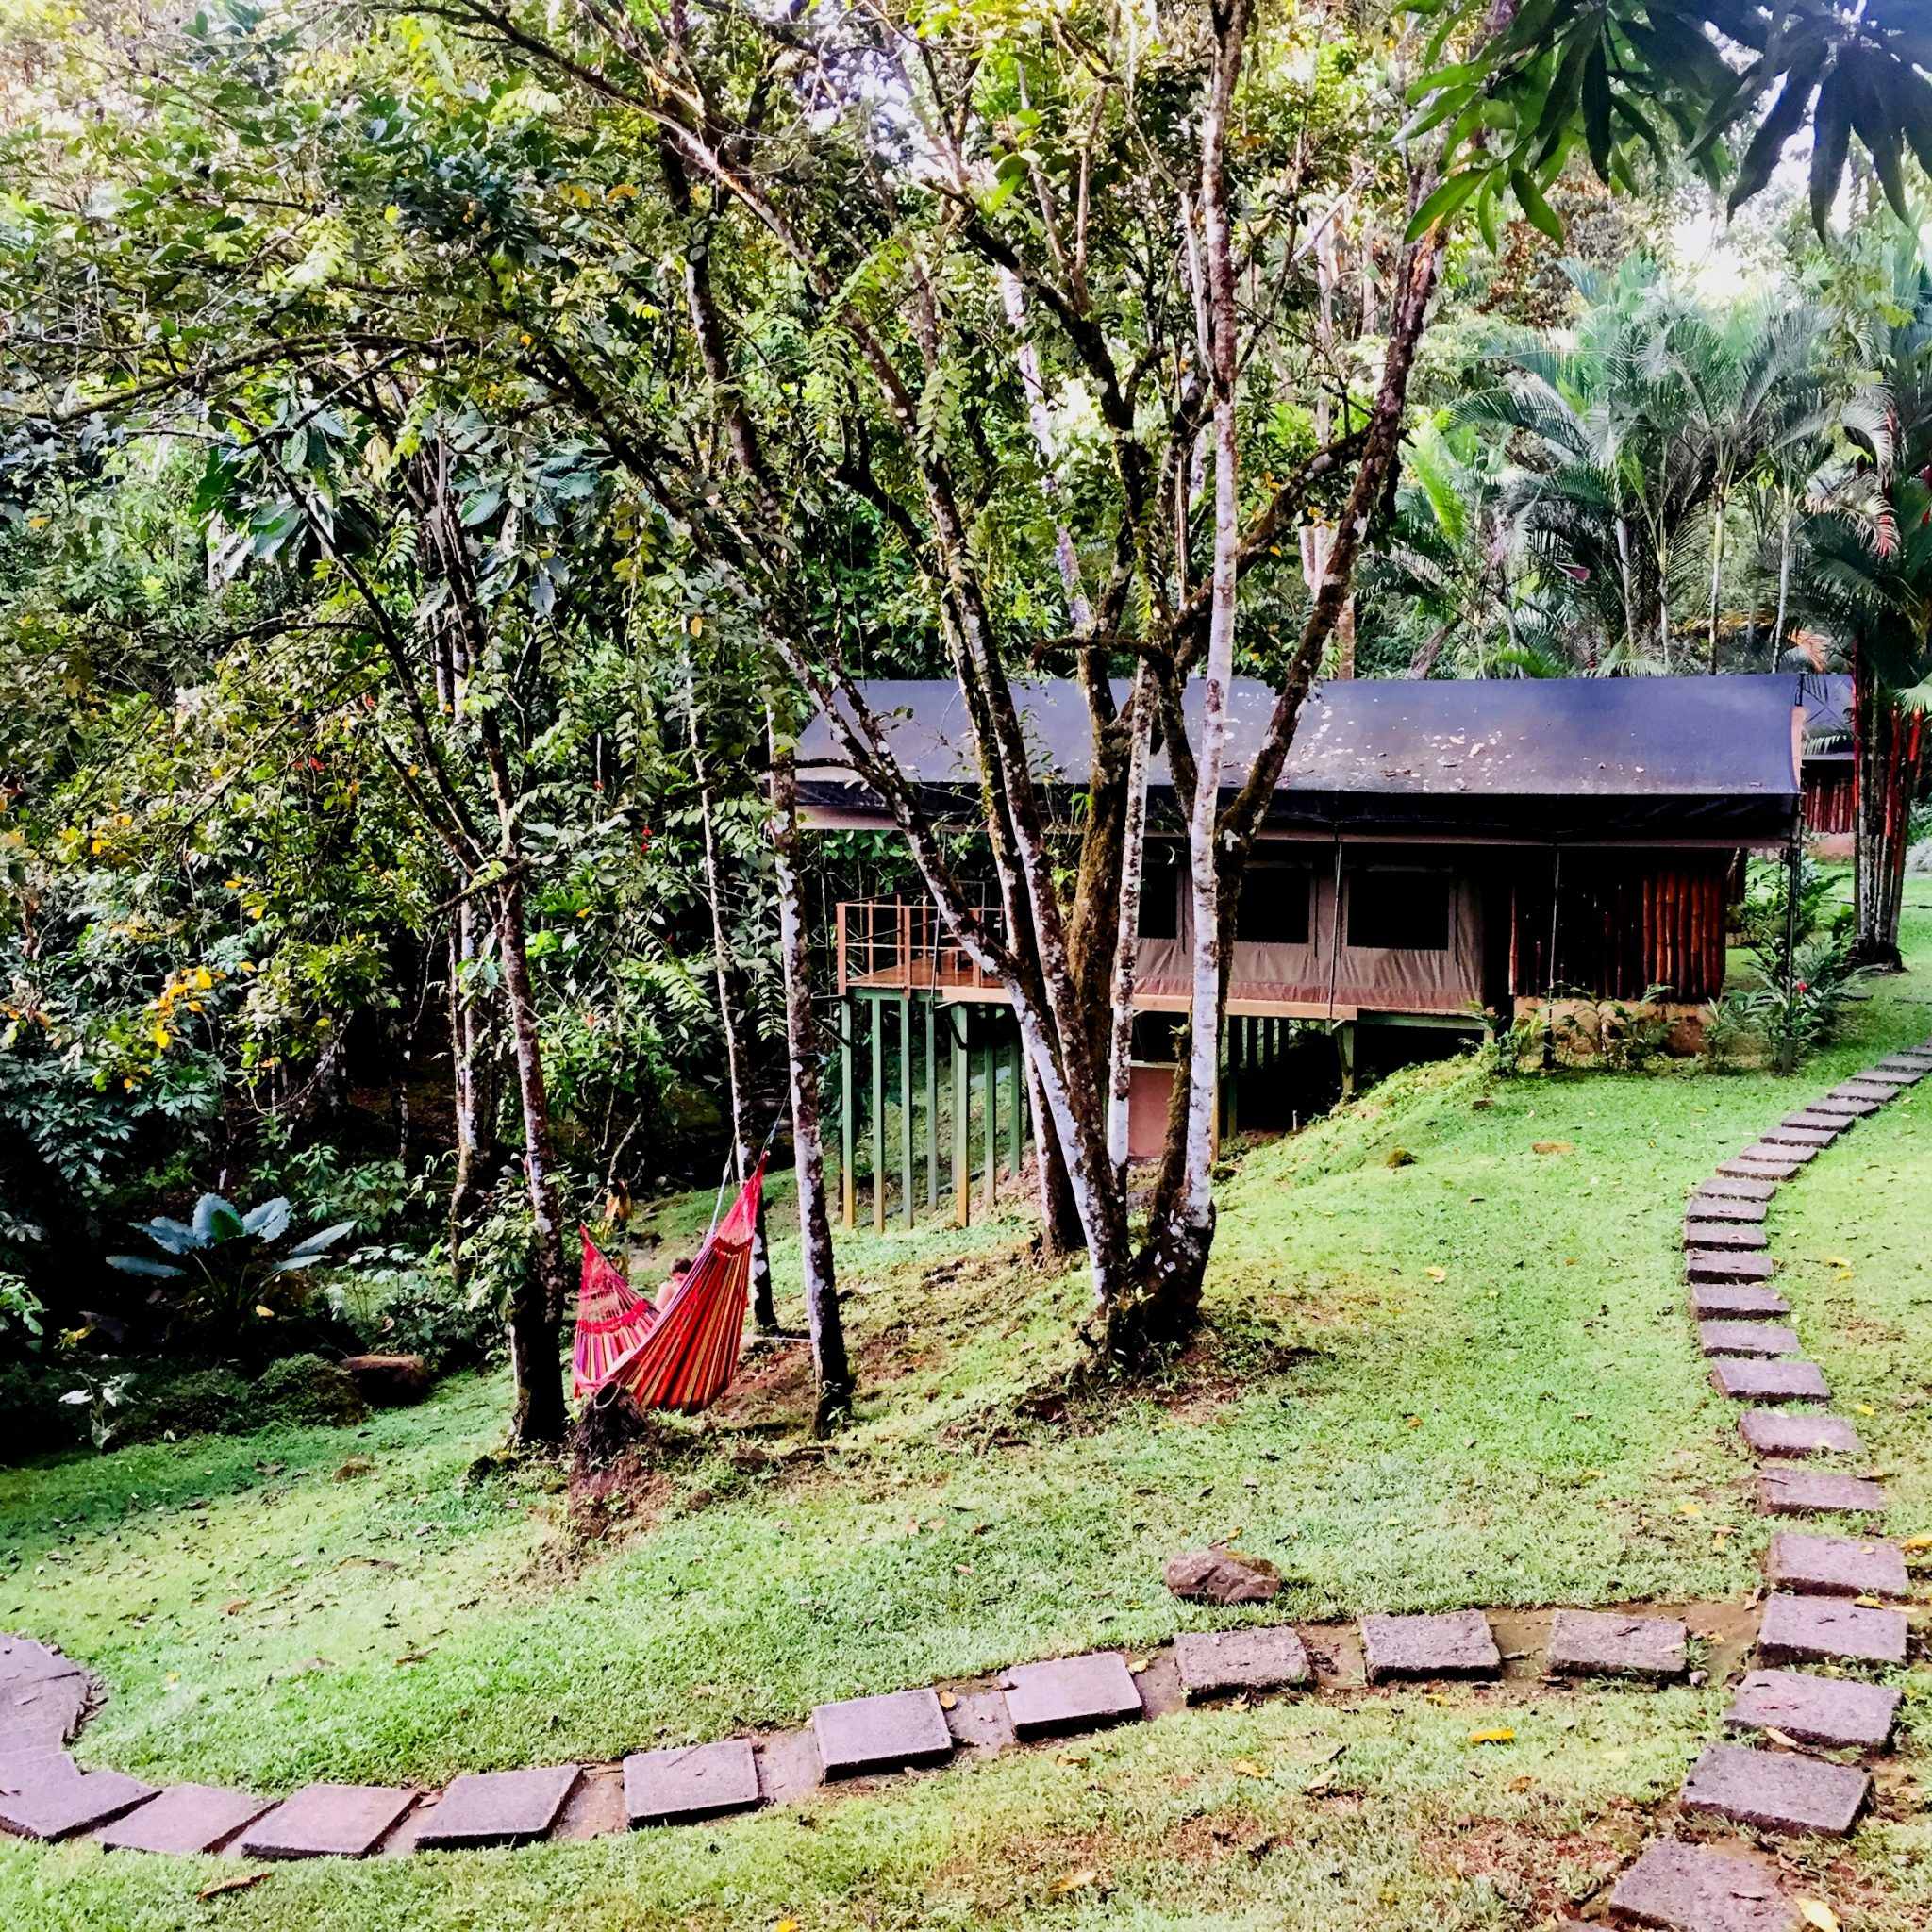 Rio Tico Lodge perfectly blends in with the forest.